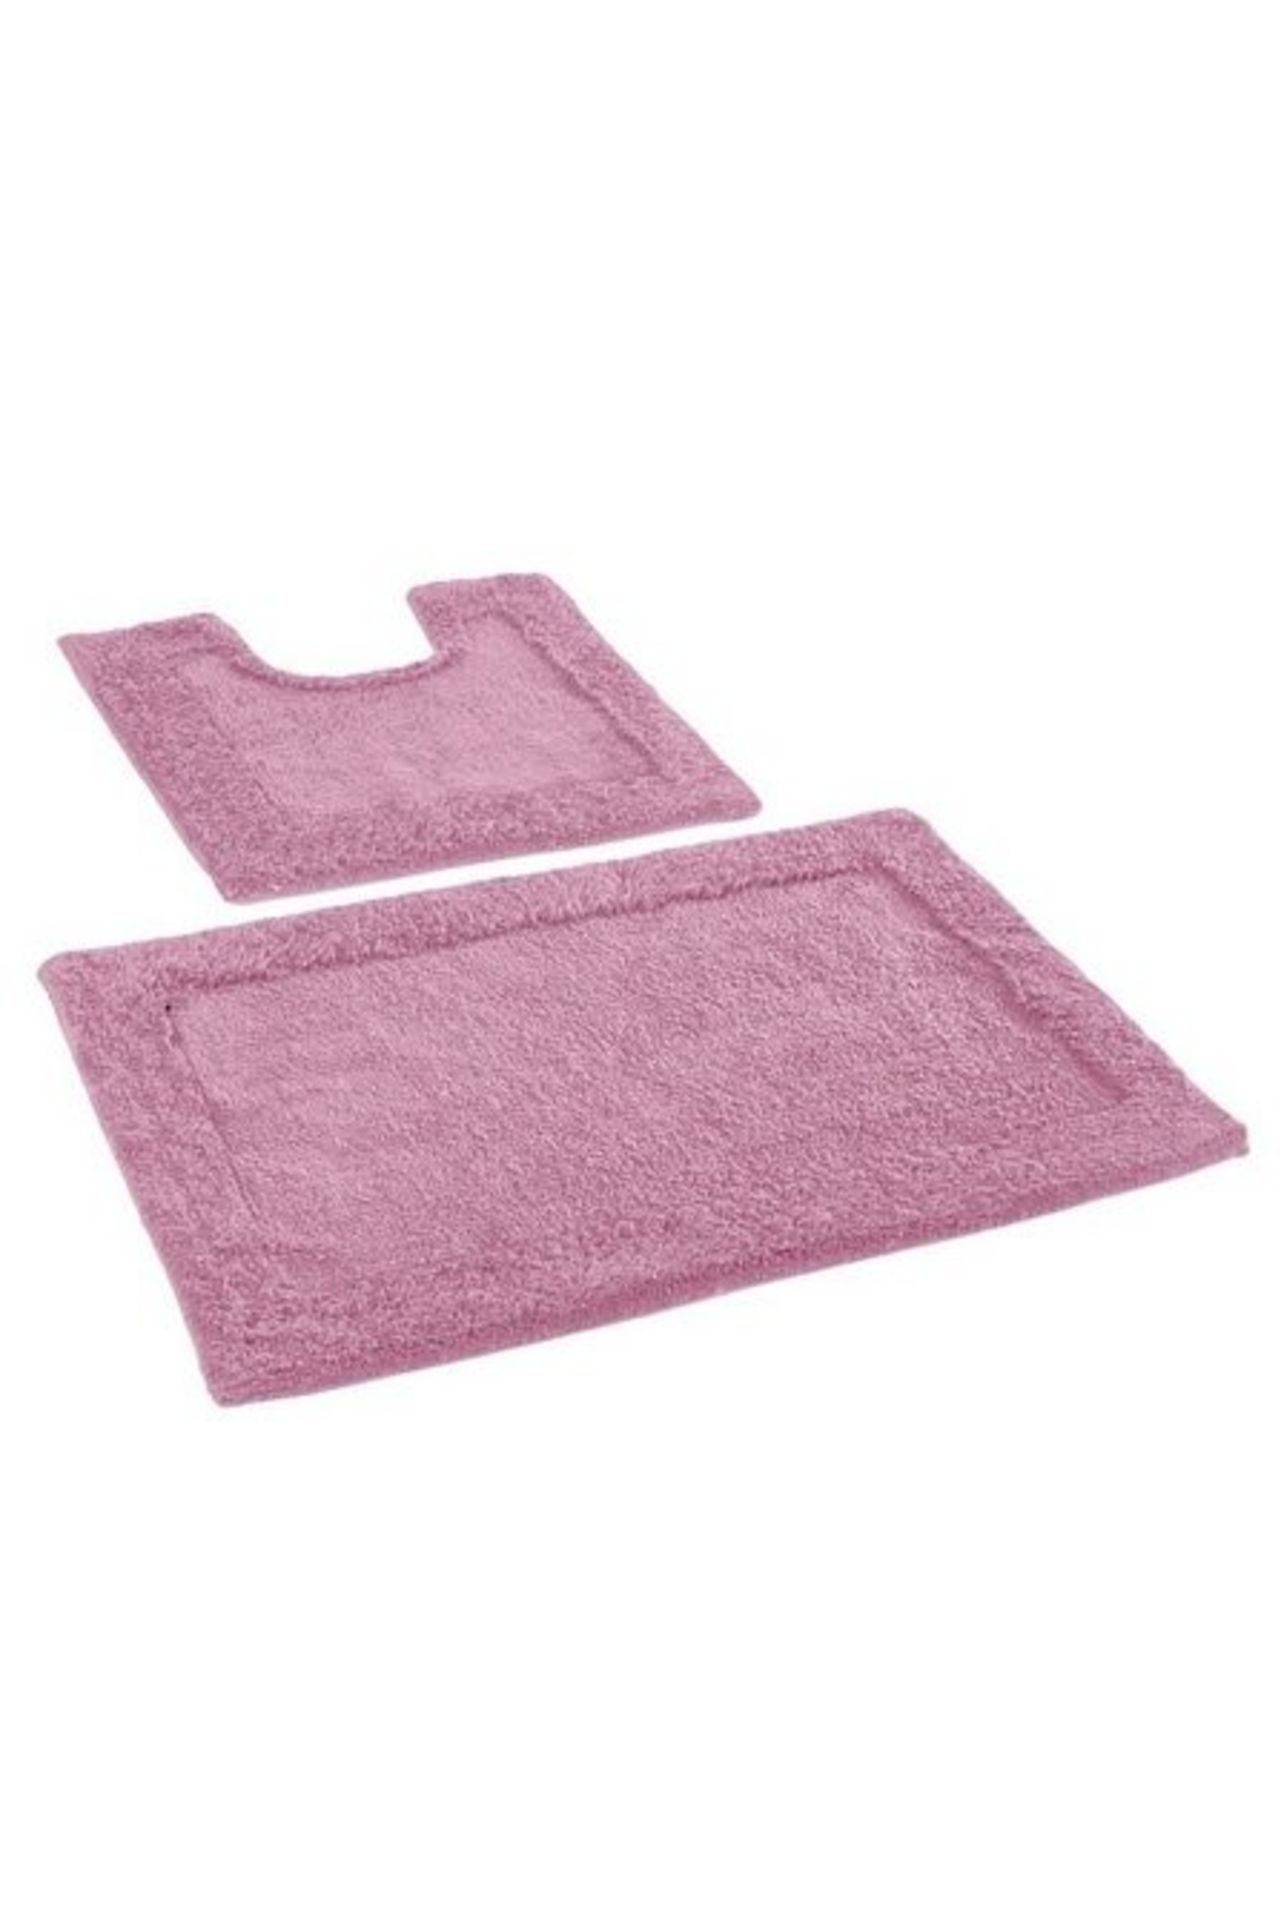 Lot 155 - 1 AS NEW BAGGED 2 PIECE BATH MAT SET IN BLUSH (PUBLIC VIEWING AVAILABLE)